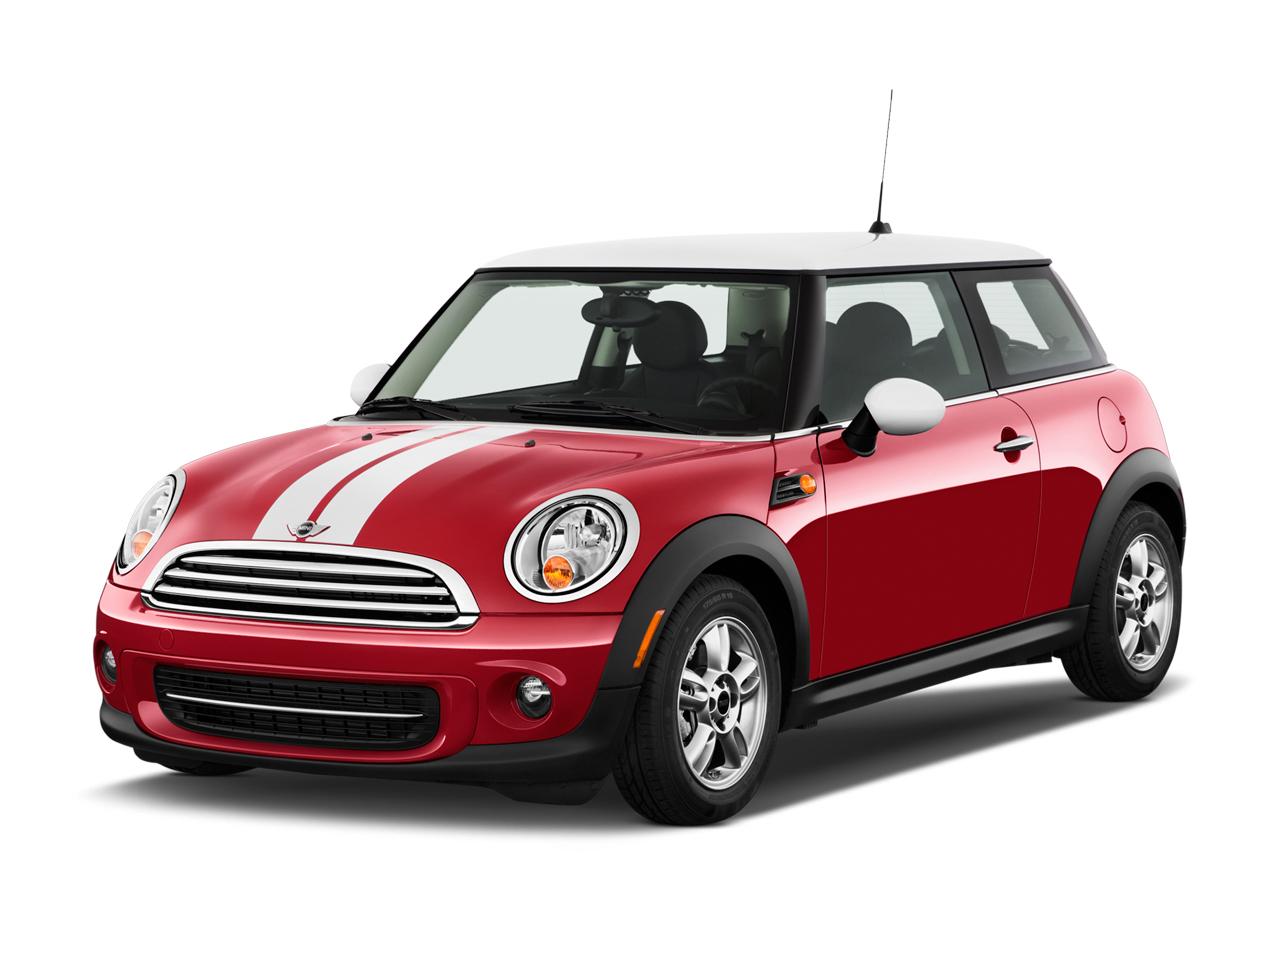 2013 mini cooper review and news motorauthority. Black Bedroom Furniture Sets. Home Design Ideas